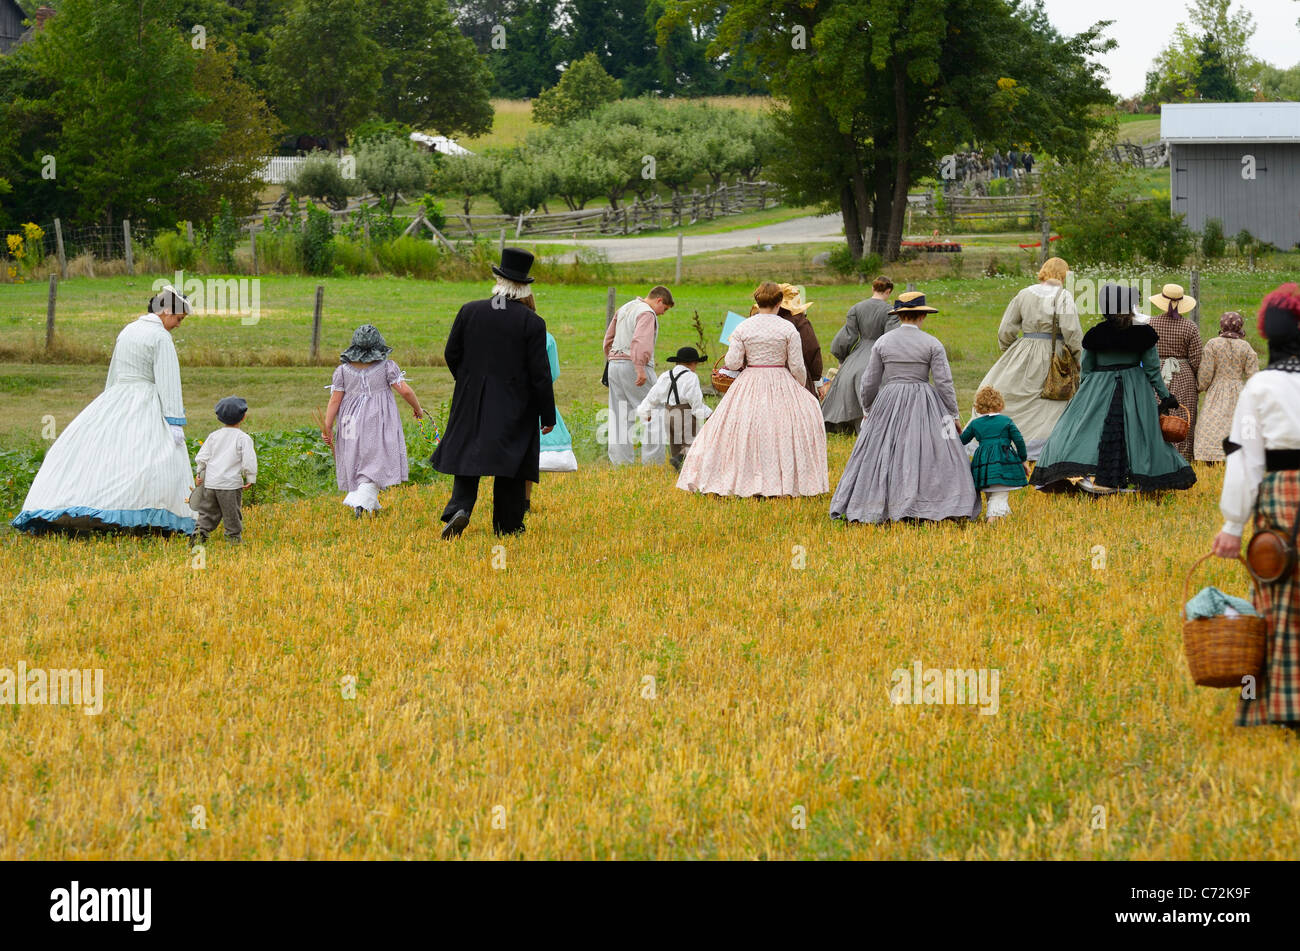 Group of people in period costume walking towards soldiers in reenactment of the Battle of Bull Run Milton Ontario - Stock Image